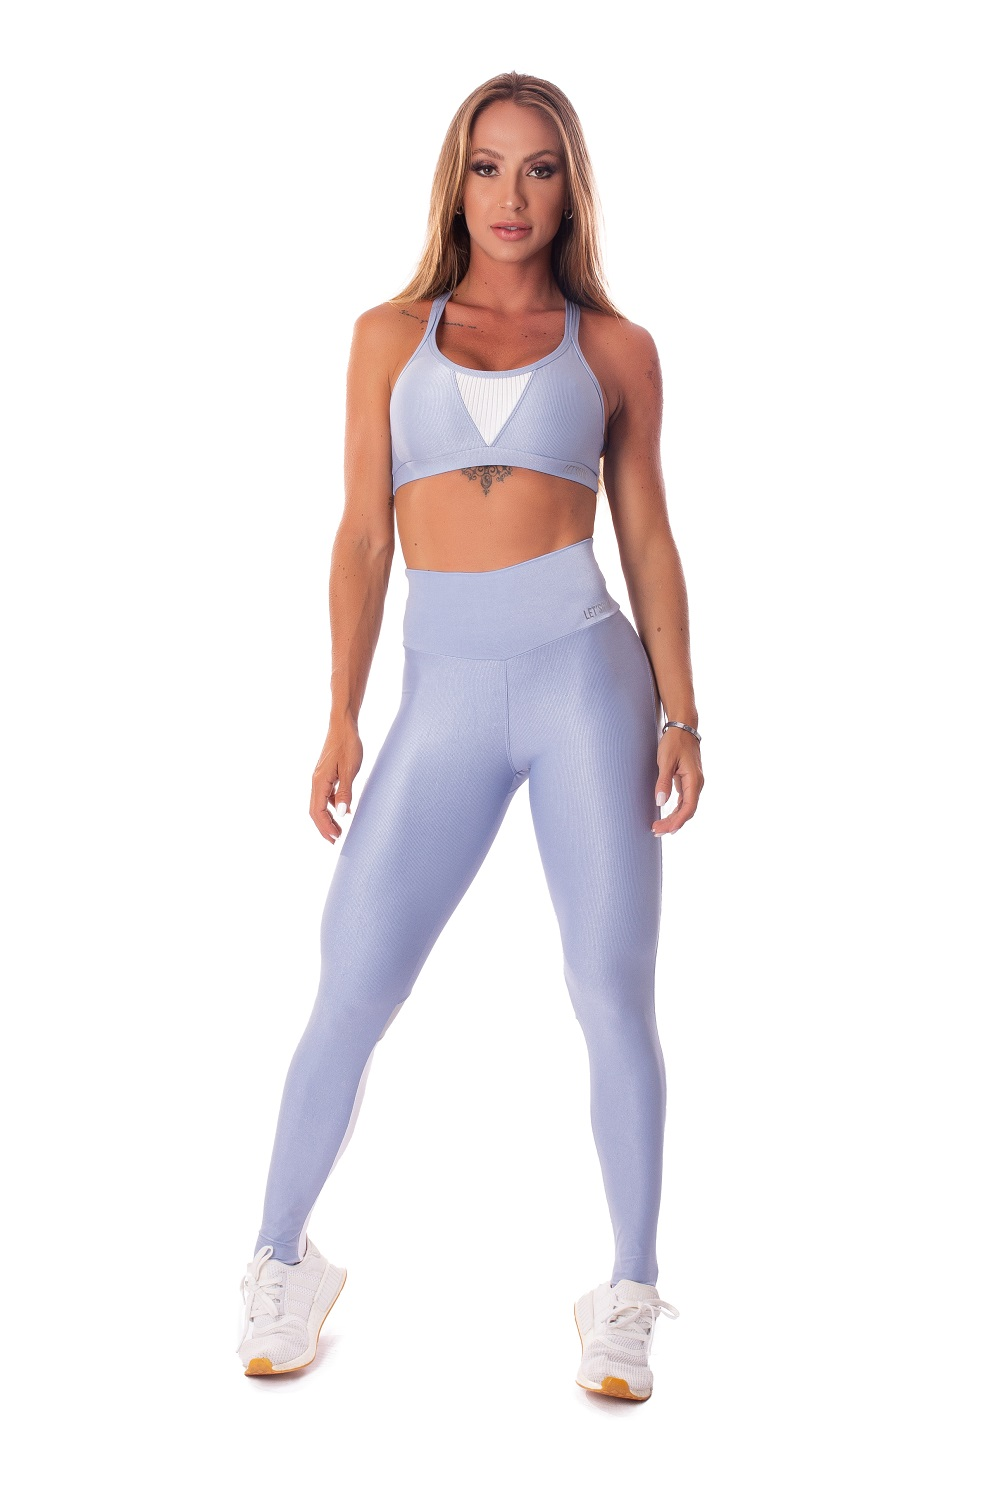 TOP DREAMY FIT LETSGYM